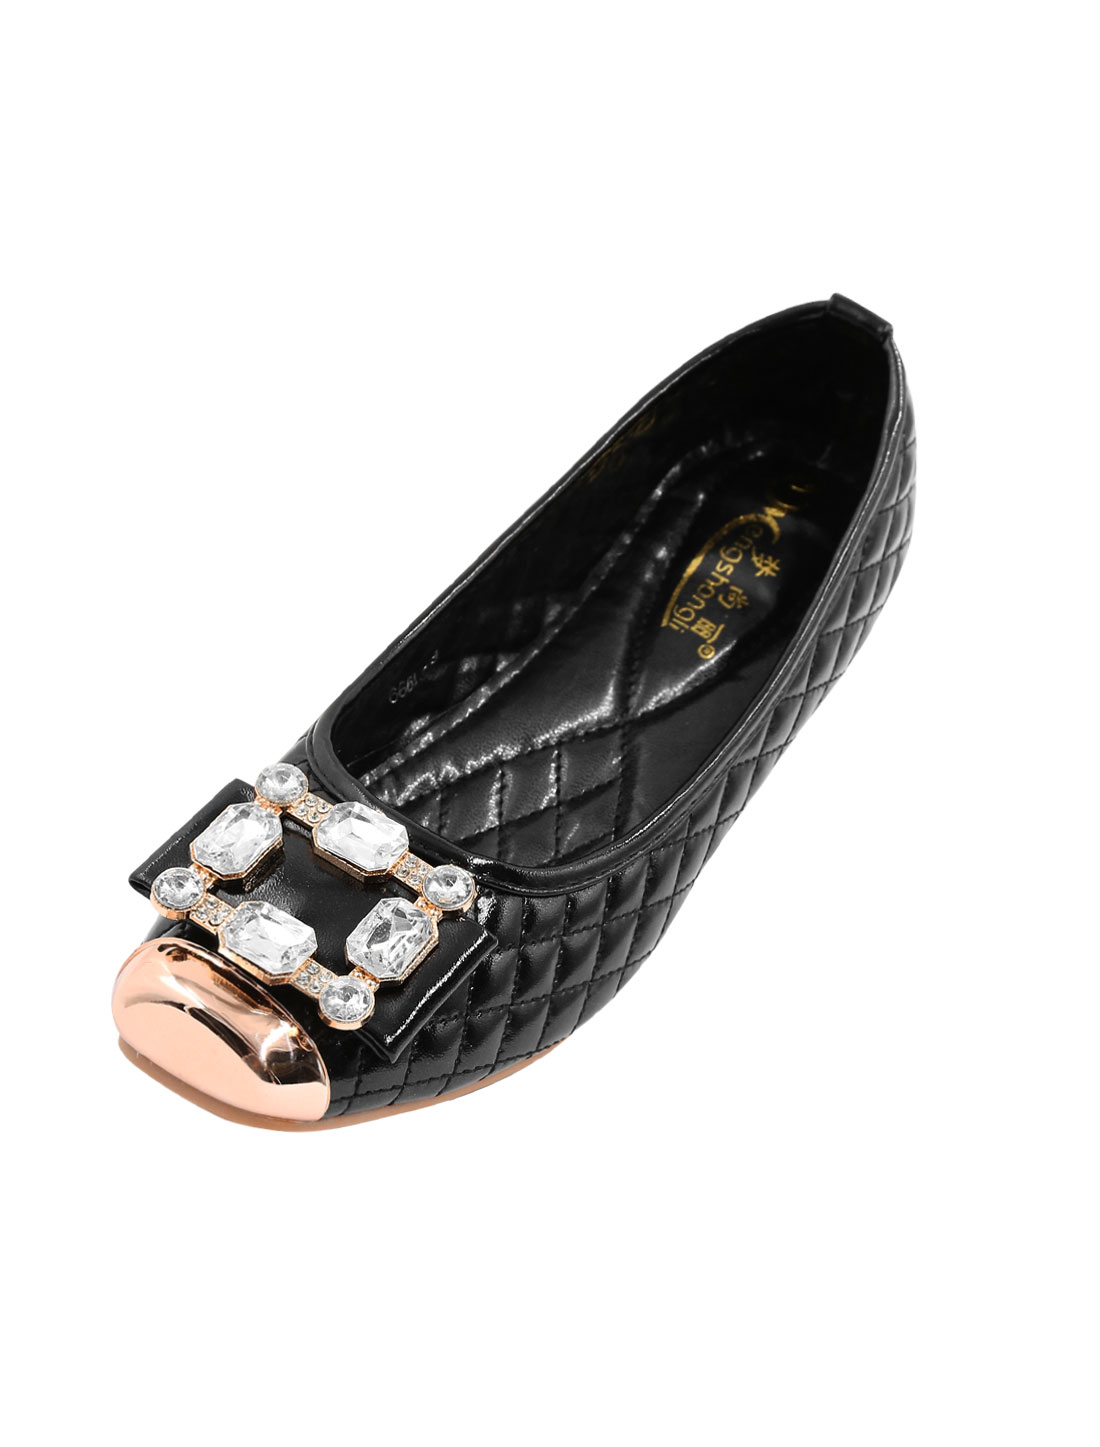 Ladies Square Metallic Toe Rhinestone Embellished PU Flats Black US 9